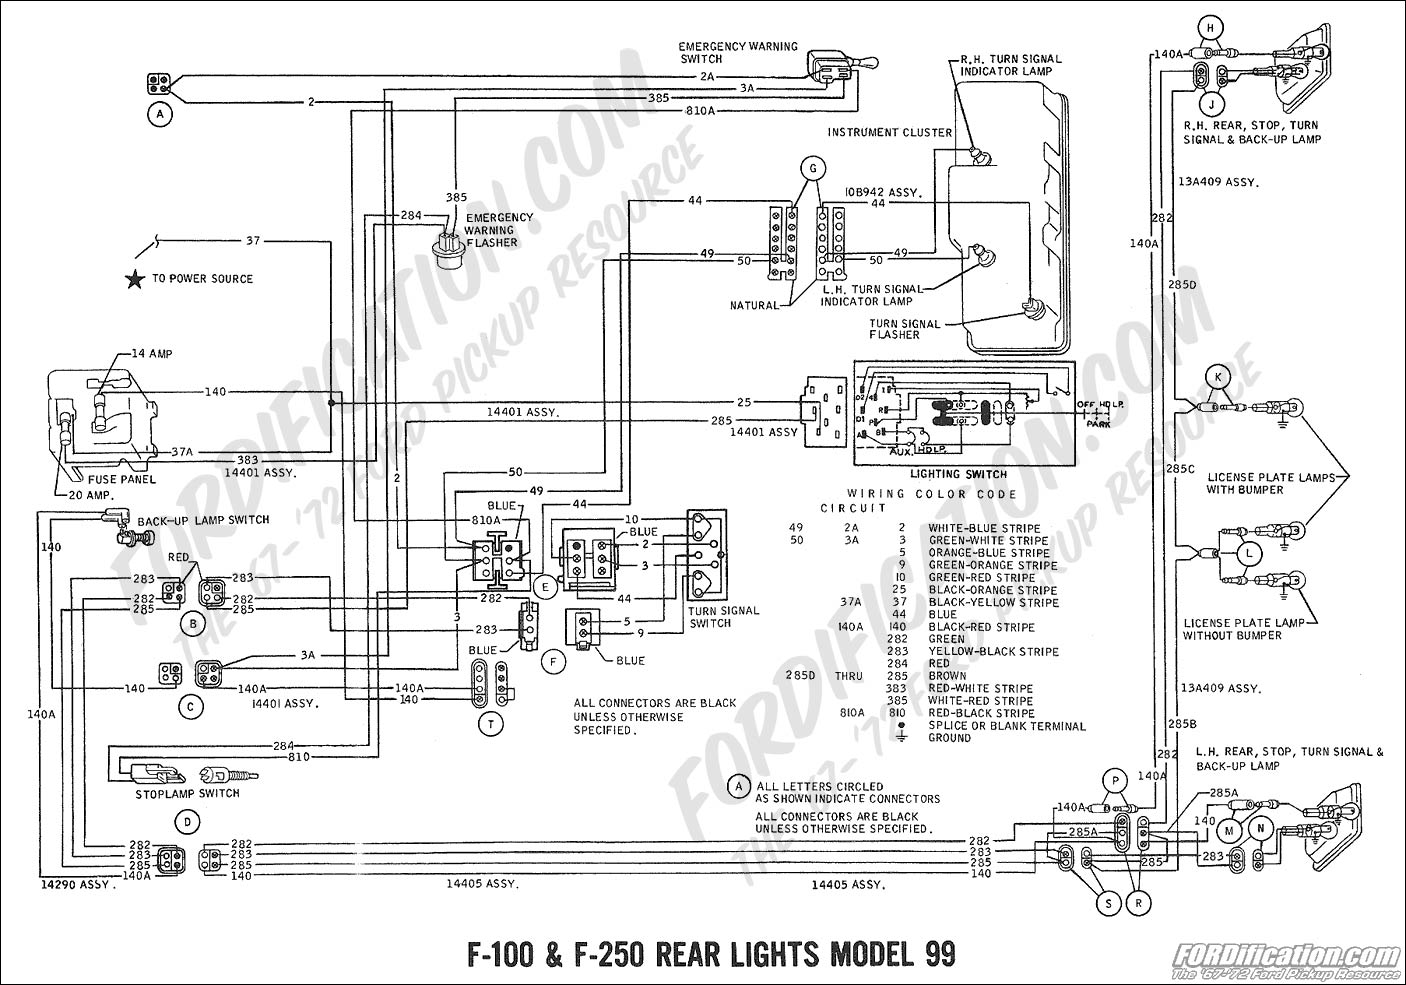 89 honda civic wiring diagram bmw e46 air intake 1991 crx o2 imageresizertool com